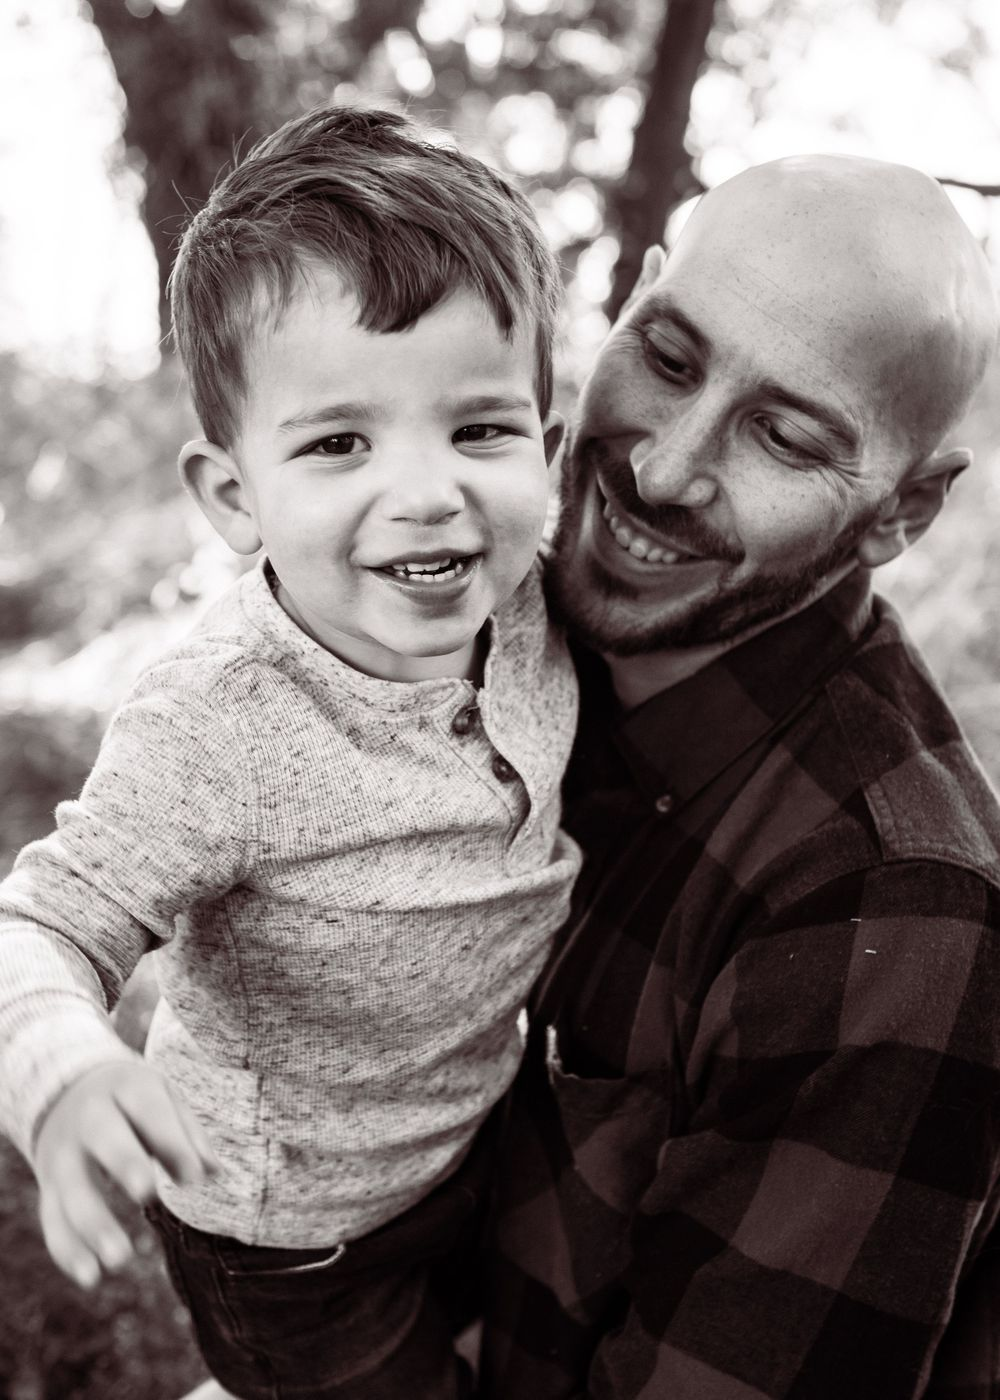 Both Dad and toddler son laugh has son reaches from Dad's arms to grab camera. Black and white photo.